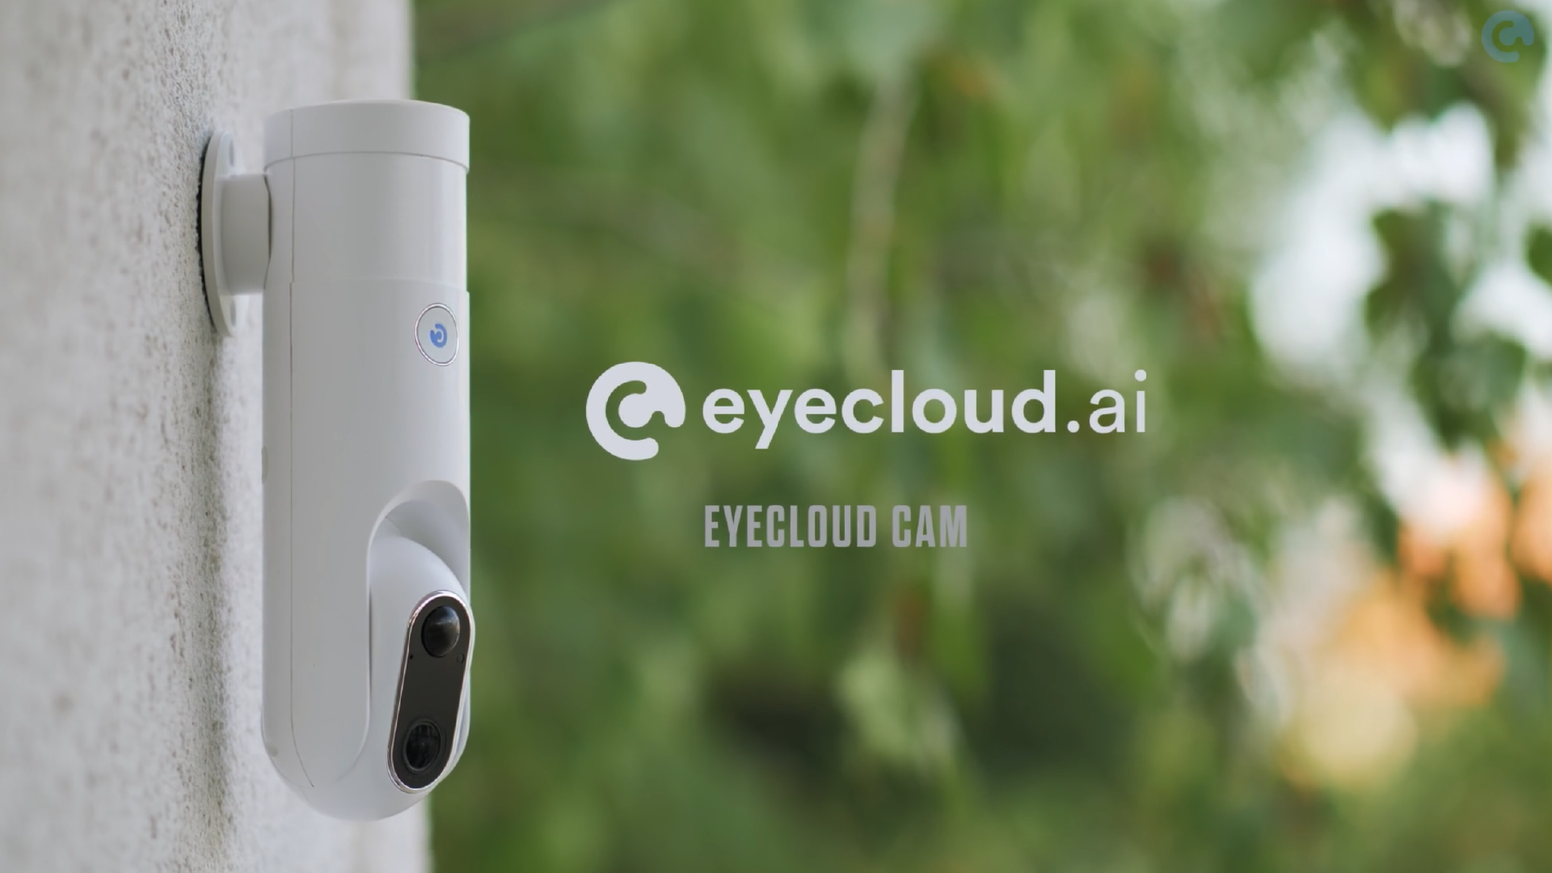 Eyecloud Cam The Smartest Ai Home Security Camera Ever By Q See Wiring Diagram For Embedded Human Face On Device Recognition 100 Cordless Easy